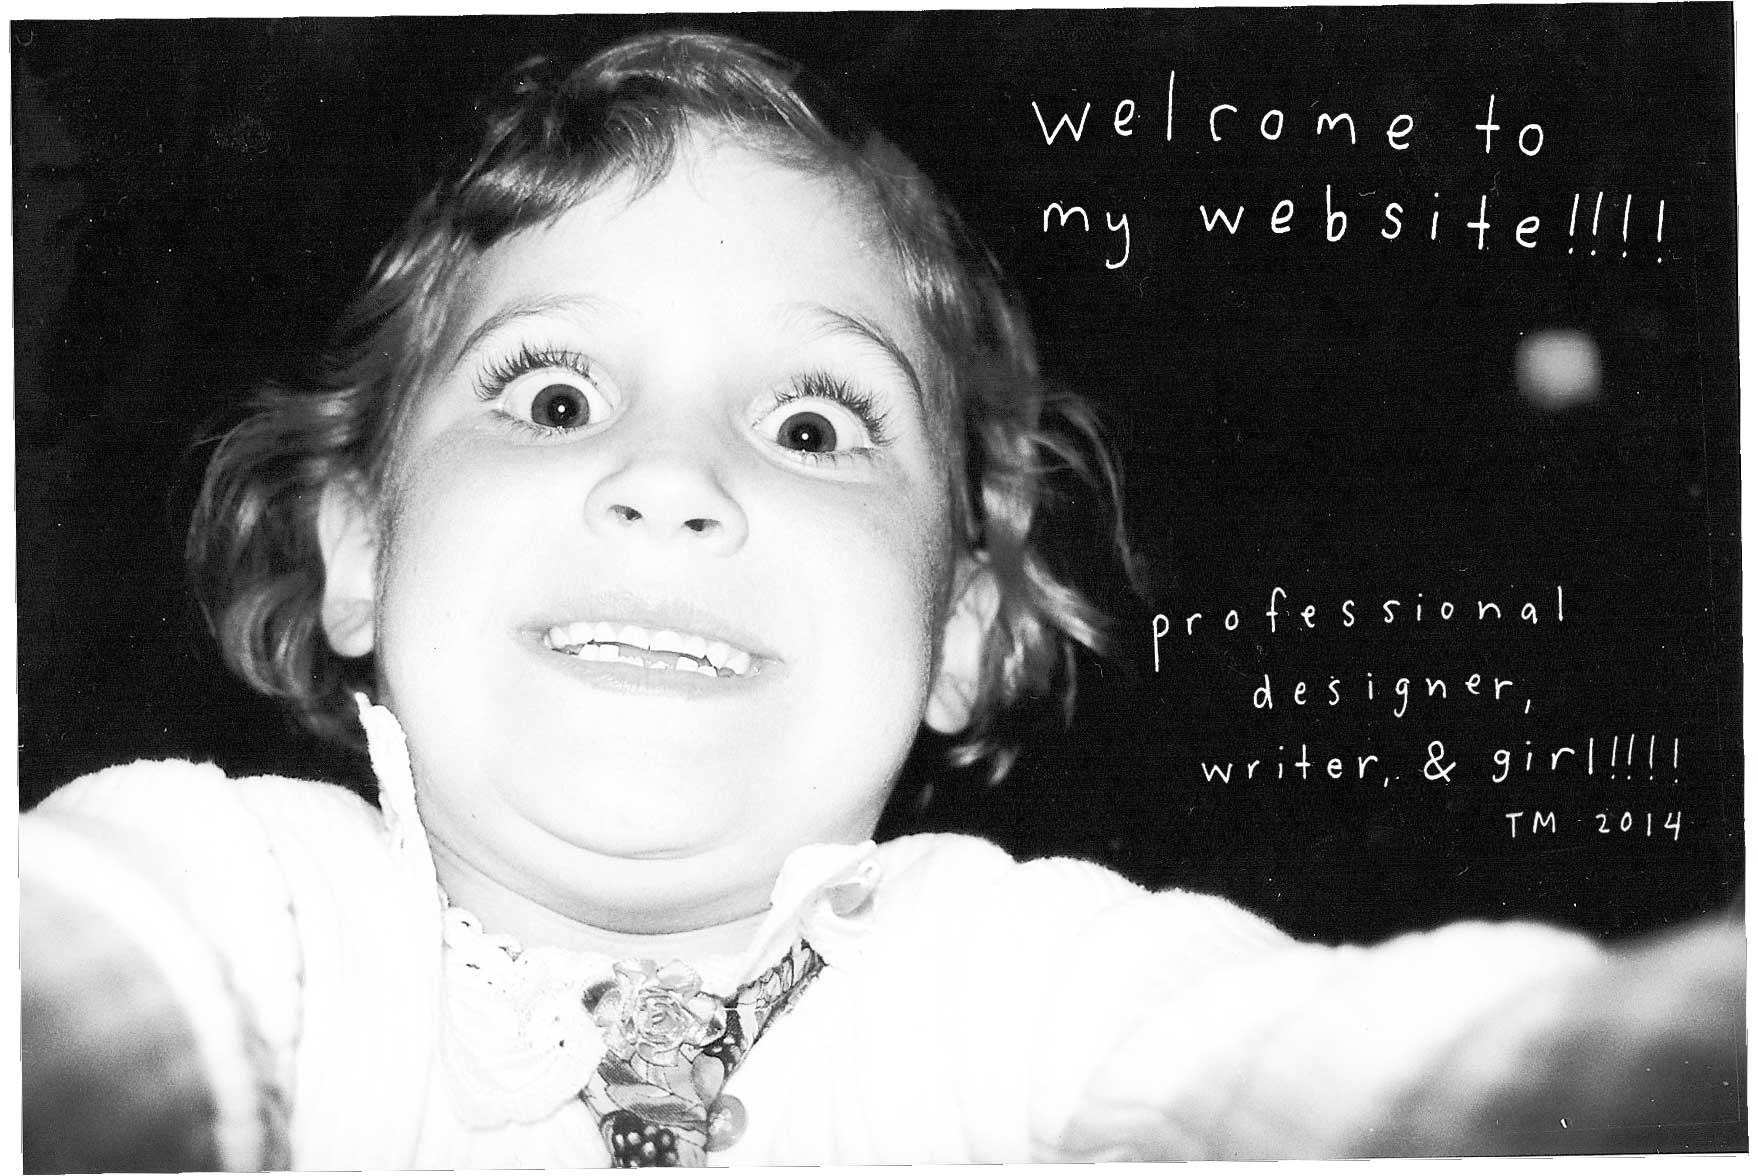 welcome to my website!!!!